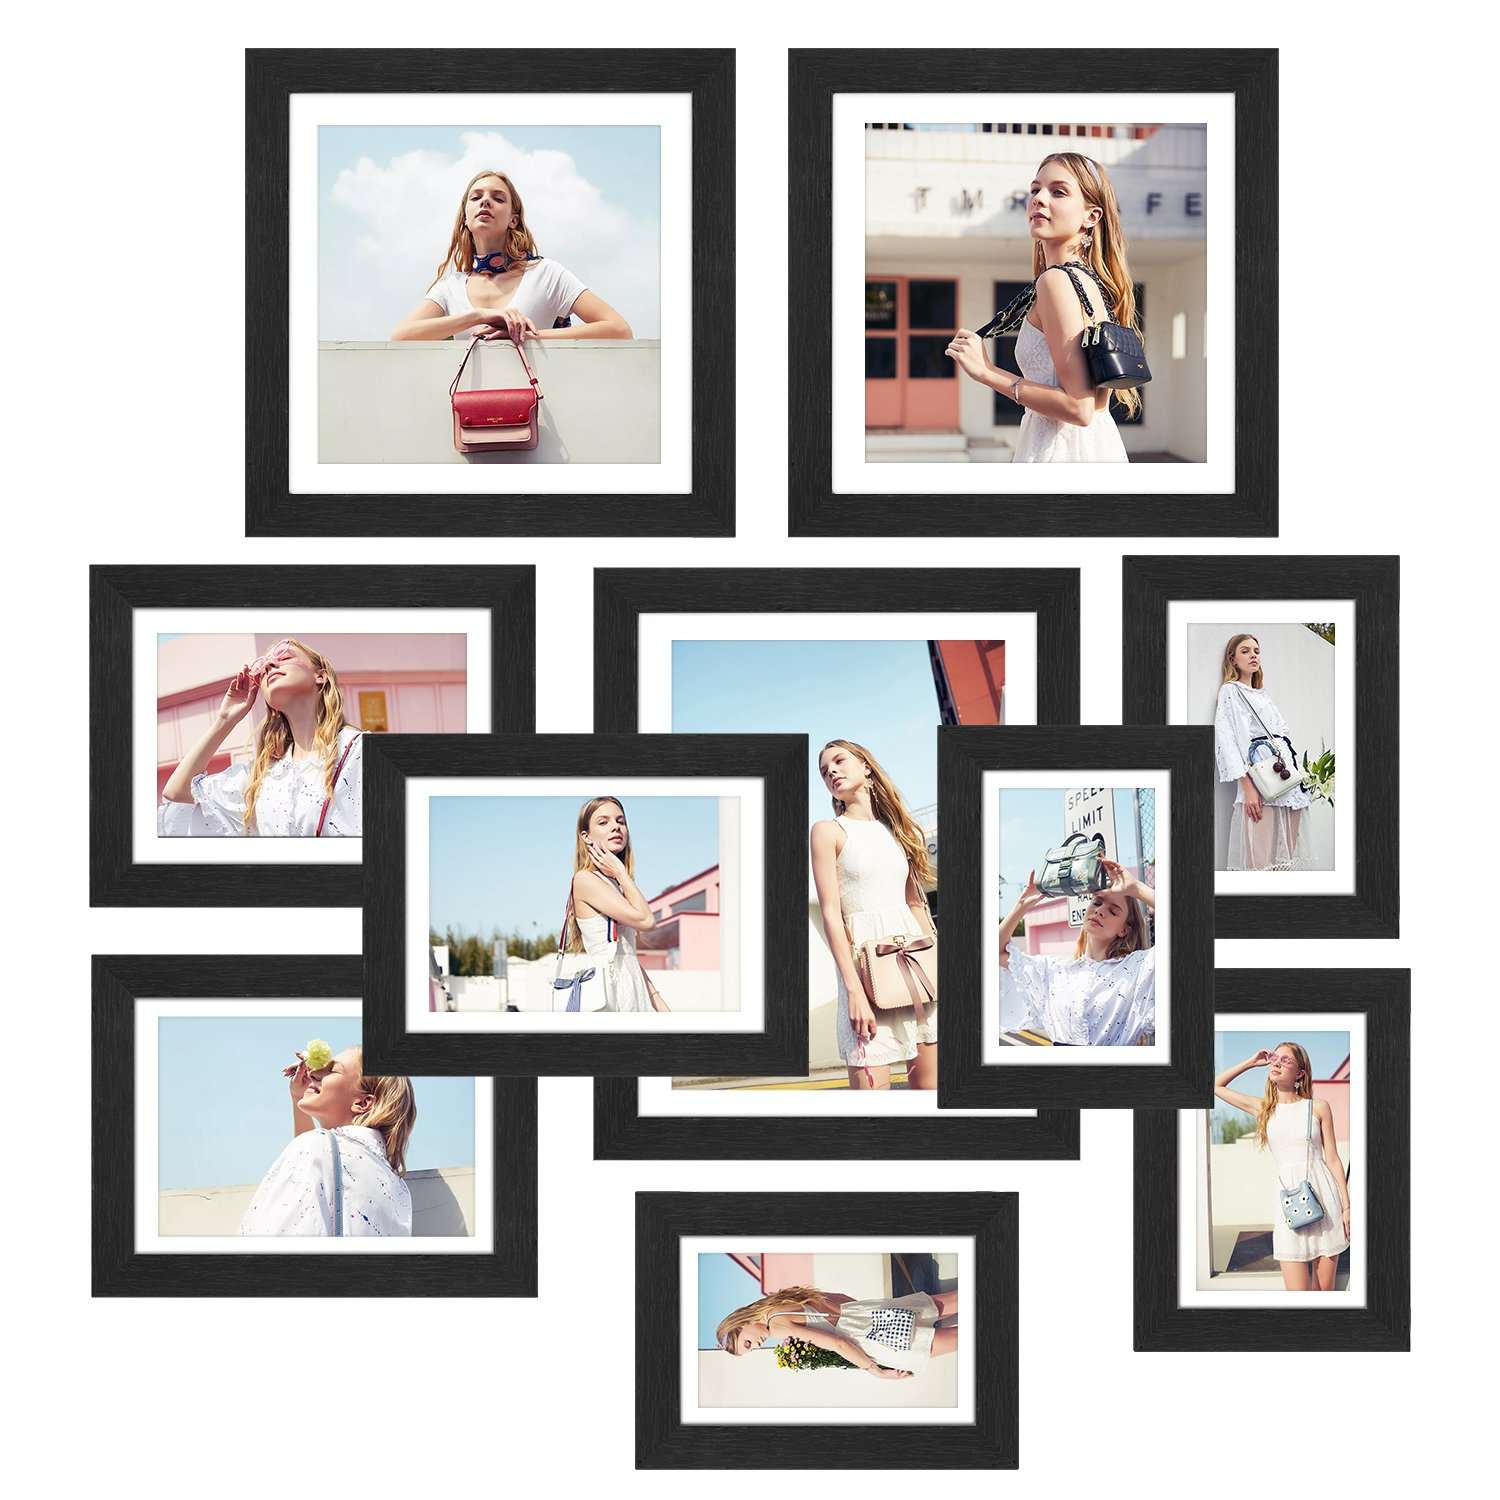 HOMFA 10pcs DIY Photo Frame Value Set, Picture Frames Wall Art Gallery Kit for Home Room Decor, Four 6x4 in, Three 7x5 in, Two 8x8 in, One 10x8 in, Black by Homfa